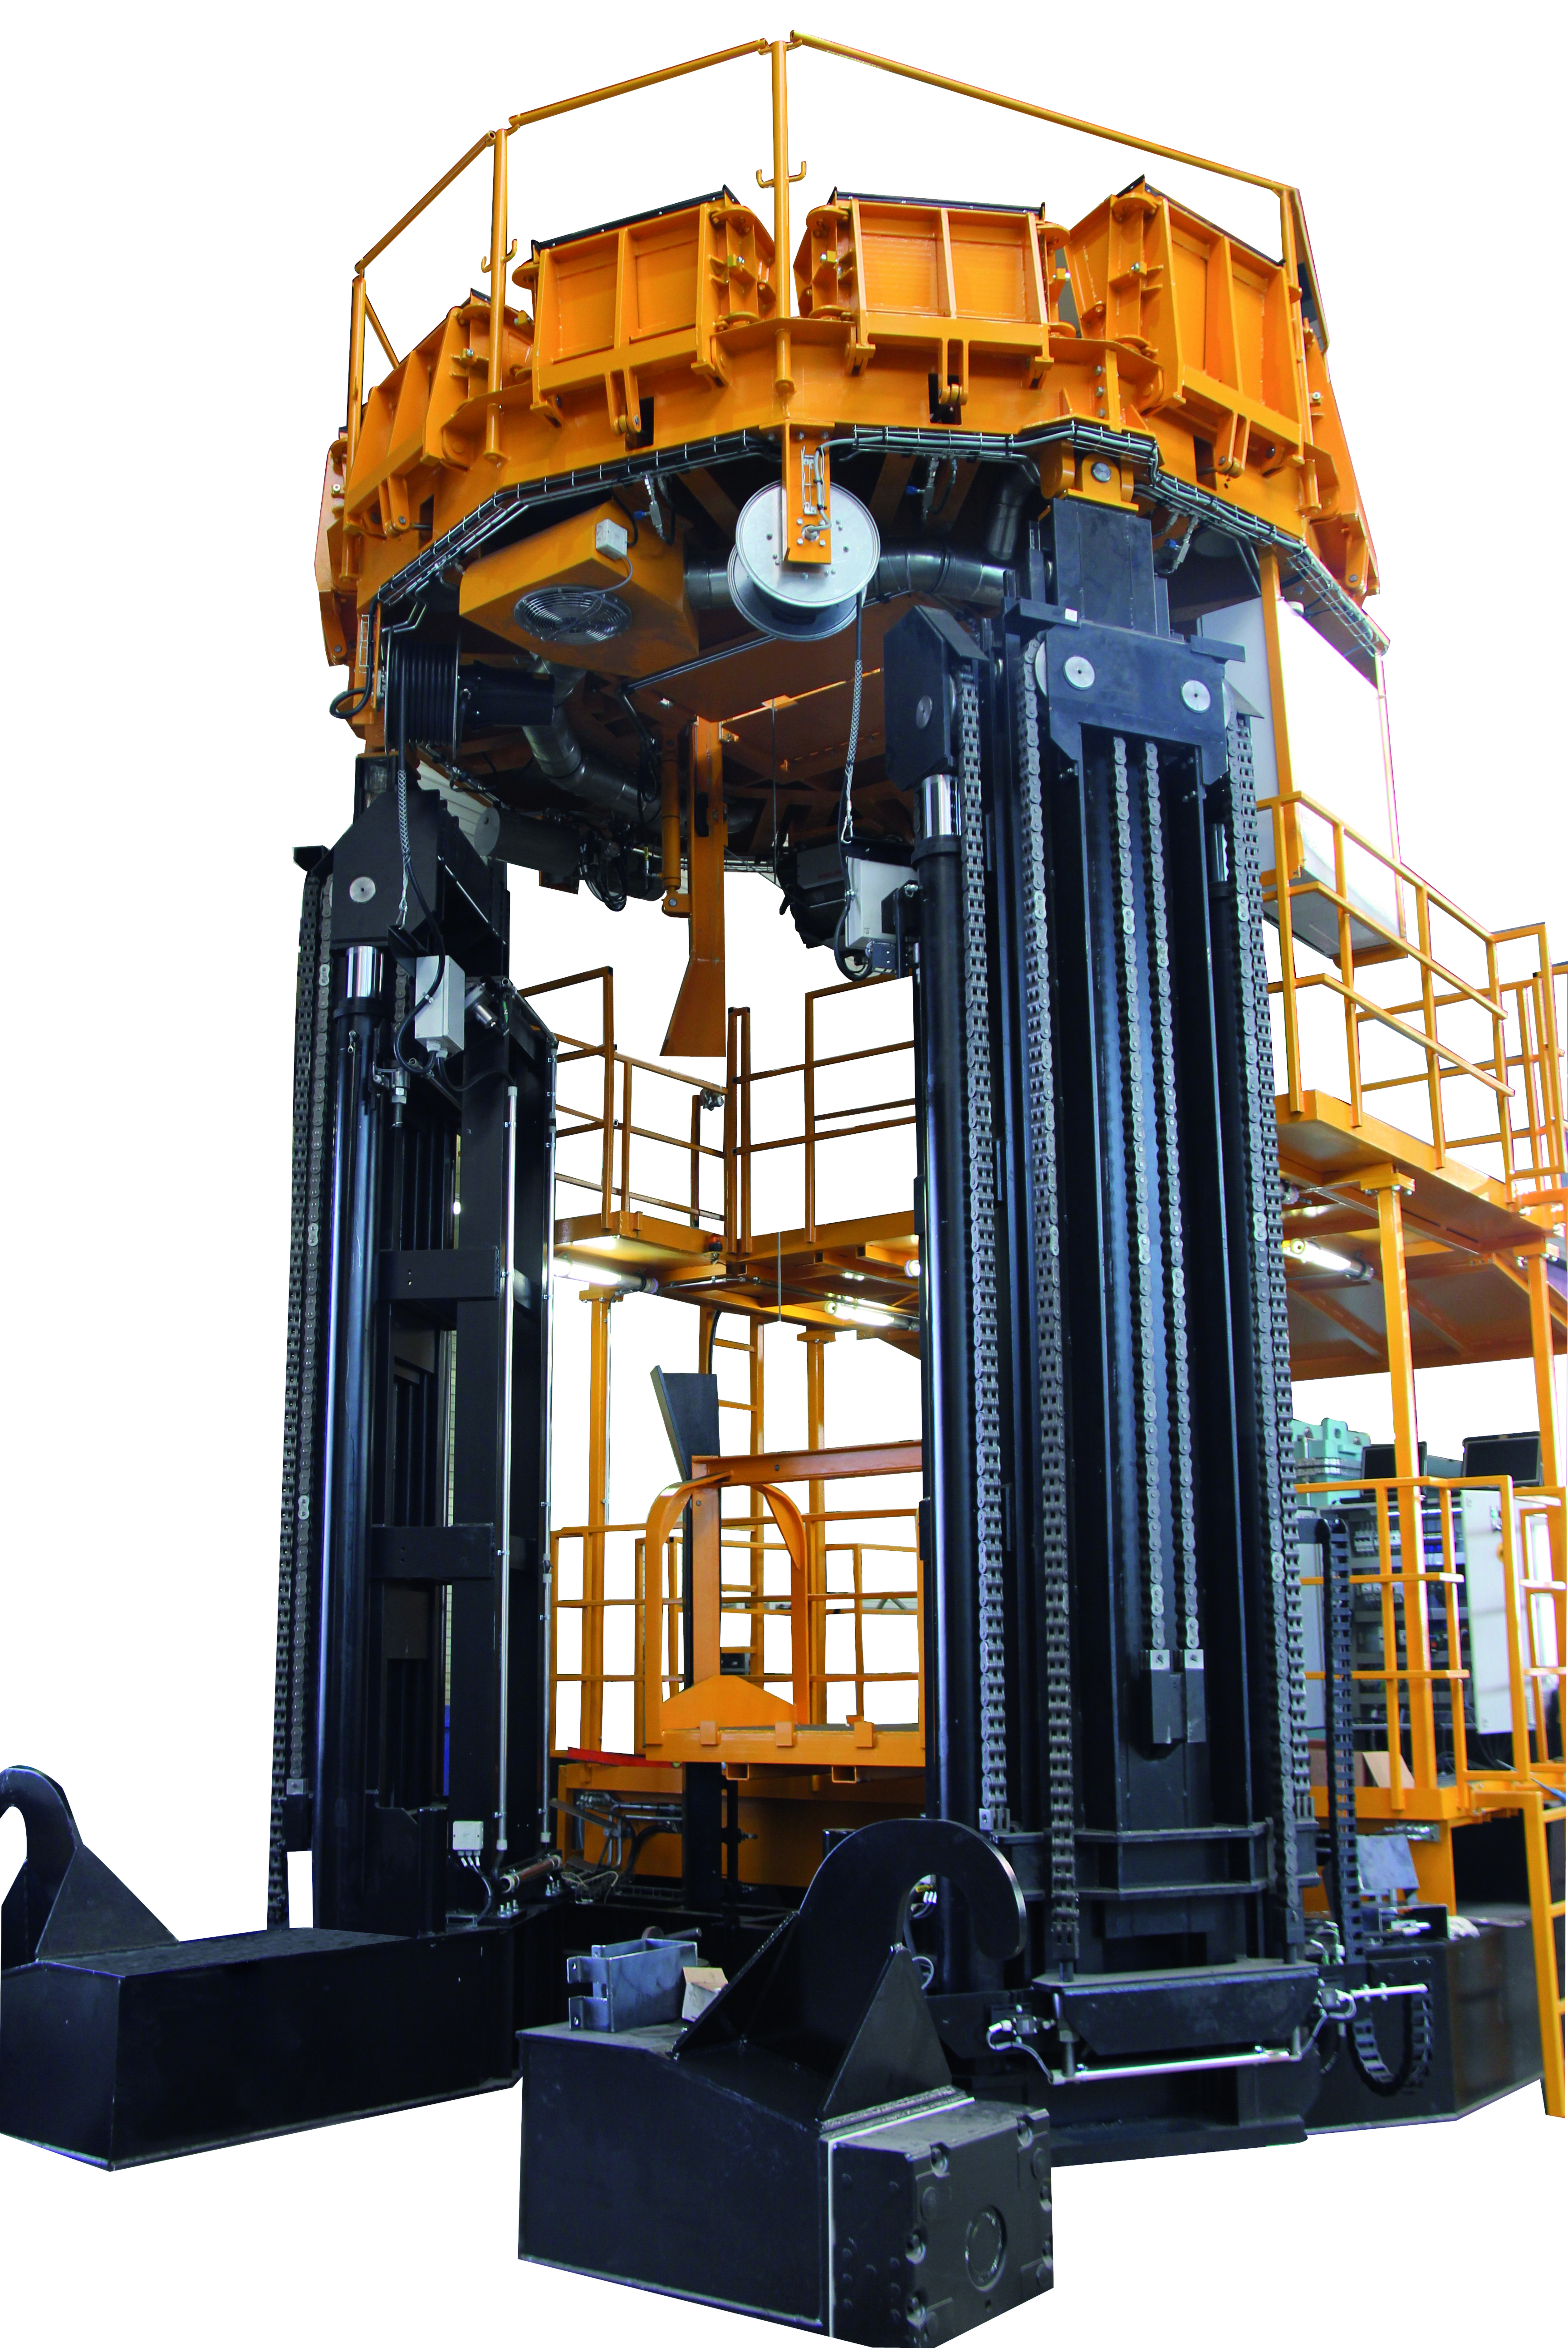 Telescopic lifting unit